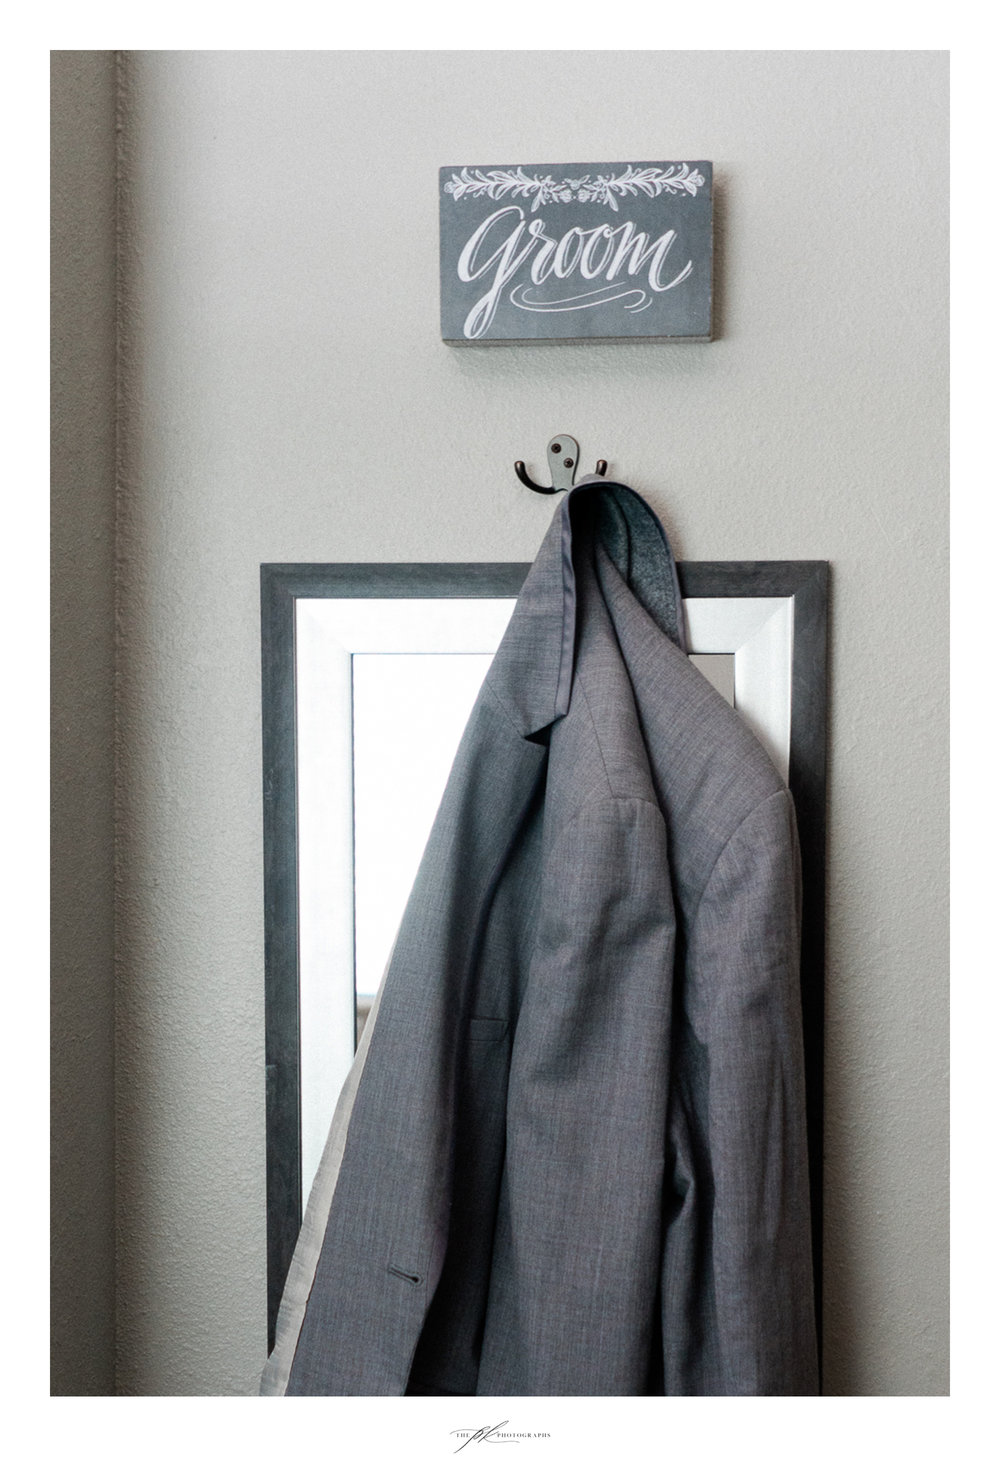 Groom's suit jacket at Magnolia Halle in San Antonio, Texas - Photographed by The PK Photographs